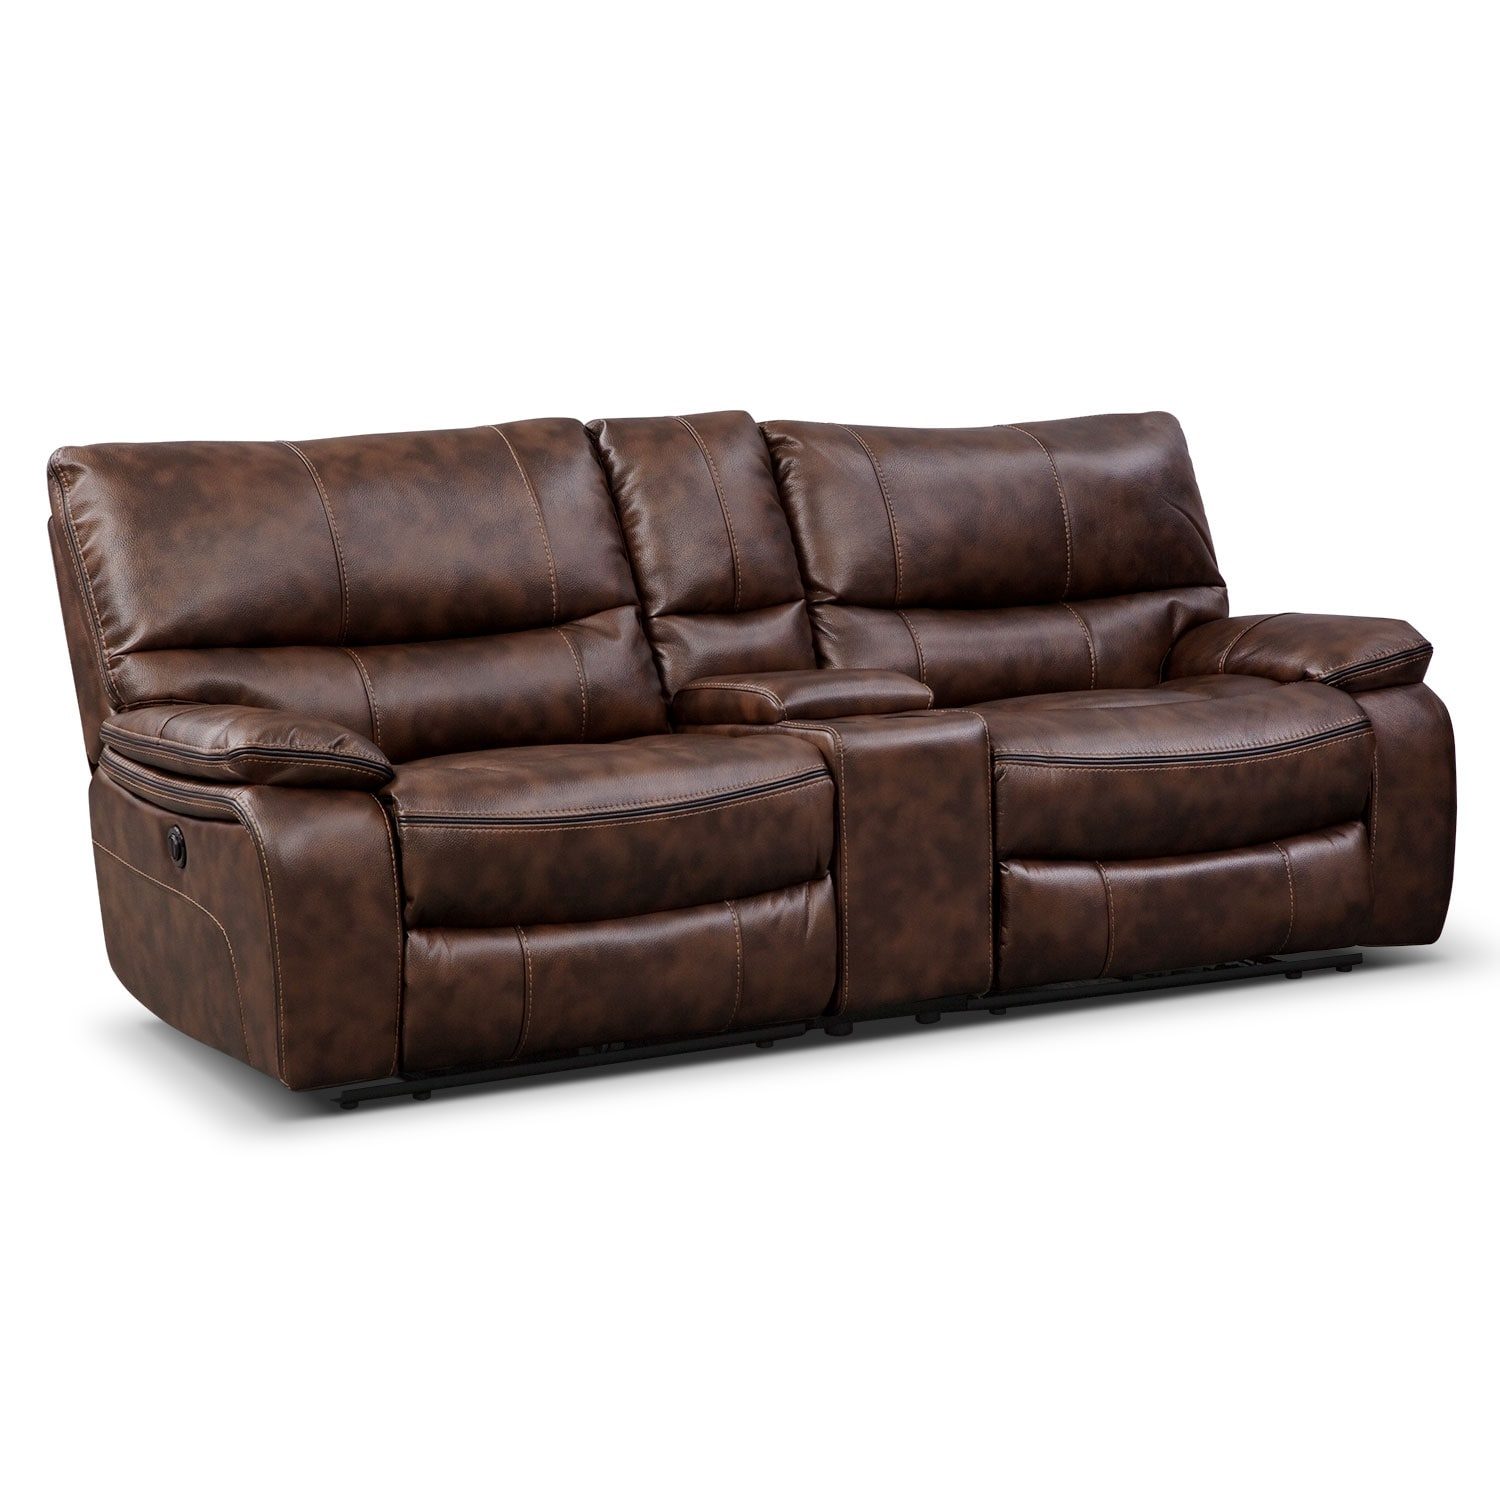 Peachy Orlando Power Reclining Sofa With Console Pabps2019 Chair Design Images Pabps2019Com